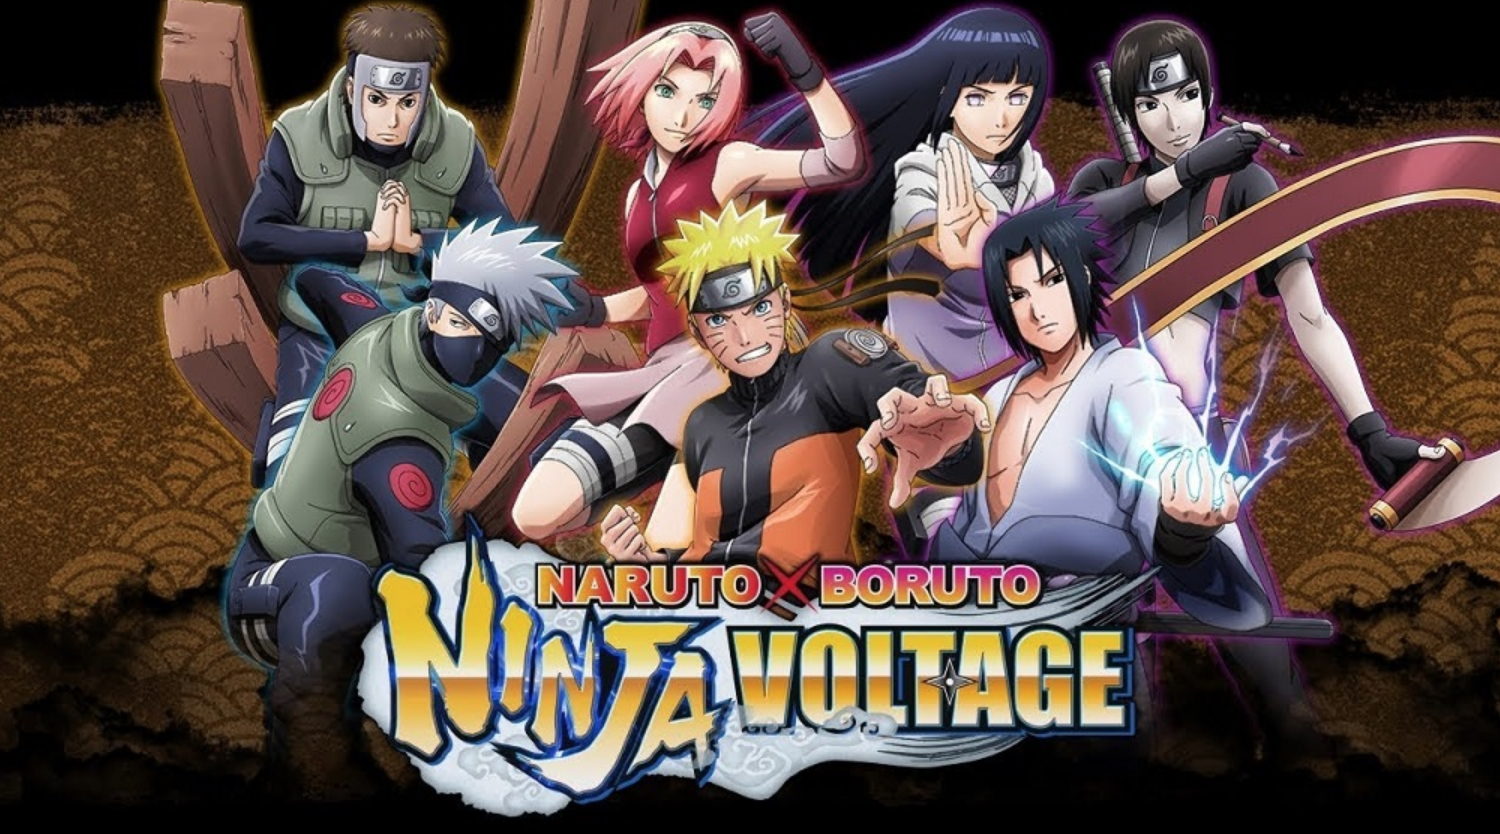 game anime naruto x boruto ninja voltage